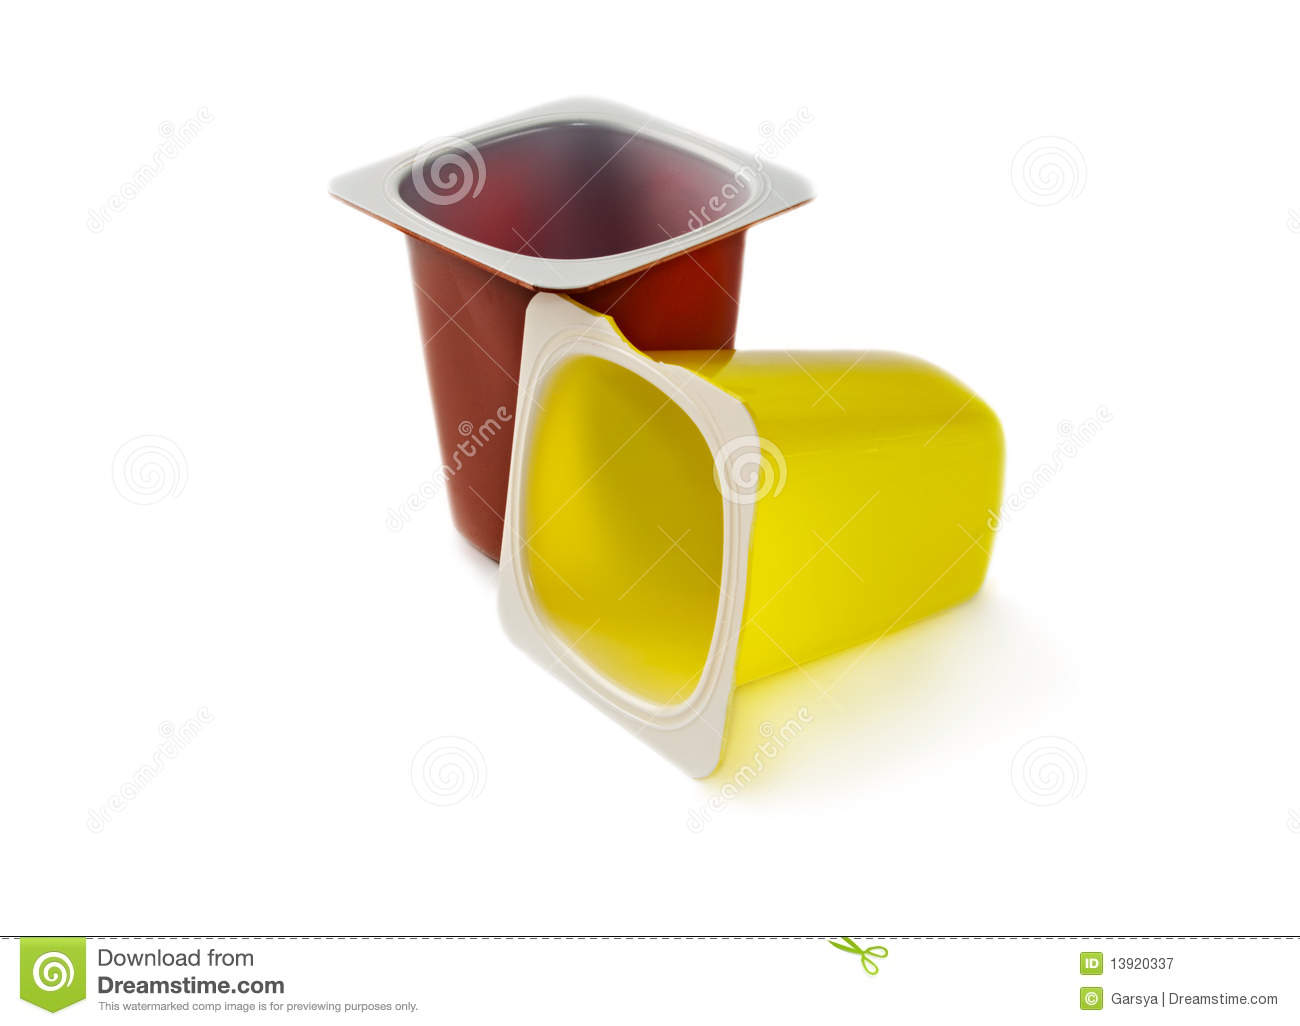 Yoghurt Pots Royalty Free Stock Photography - Image: 13920337